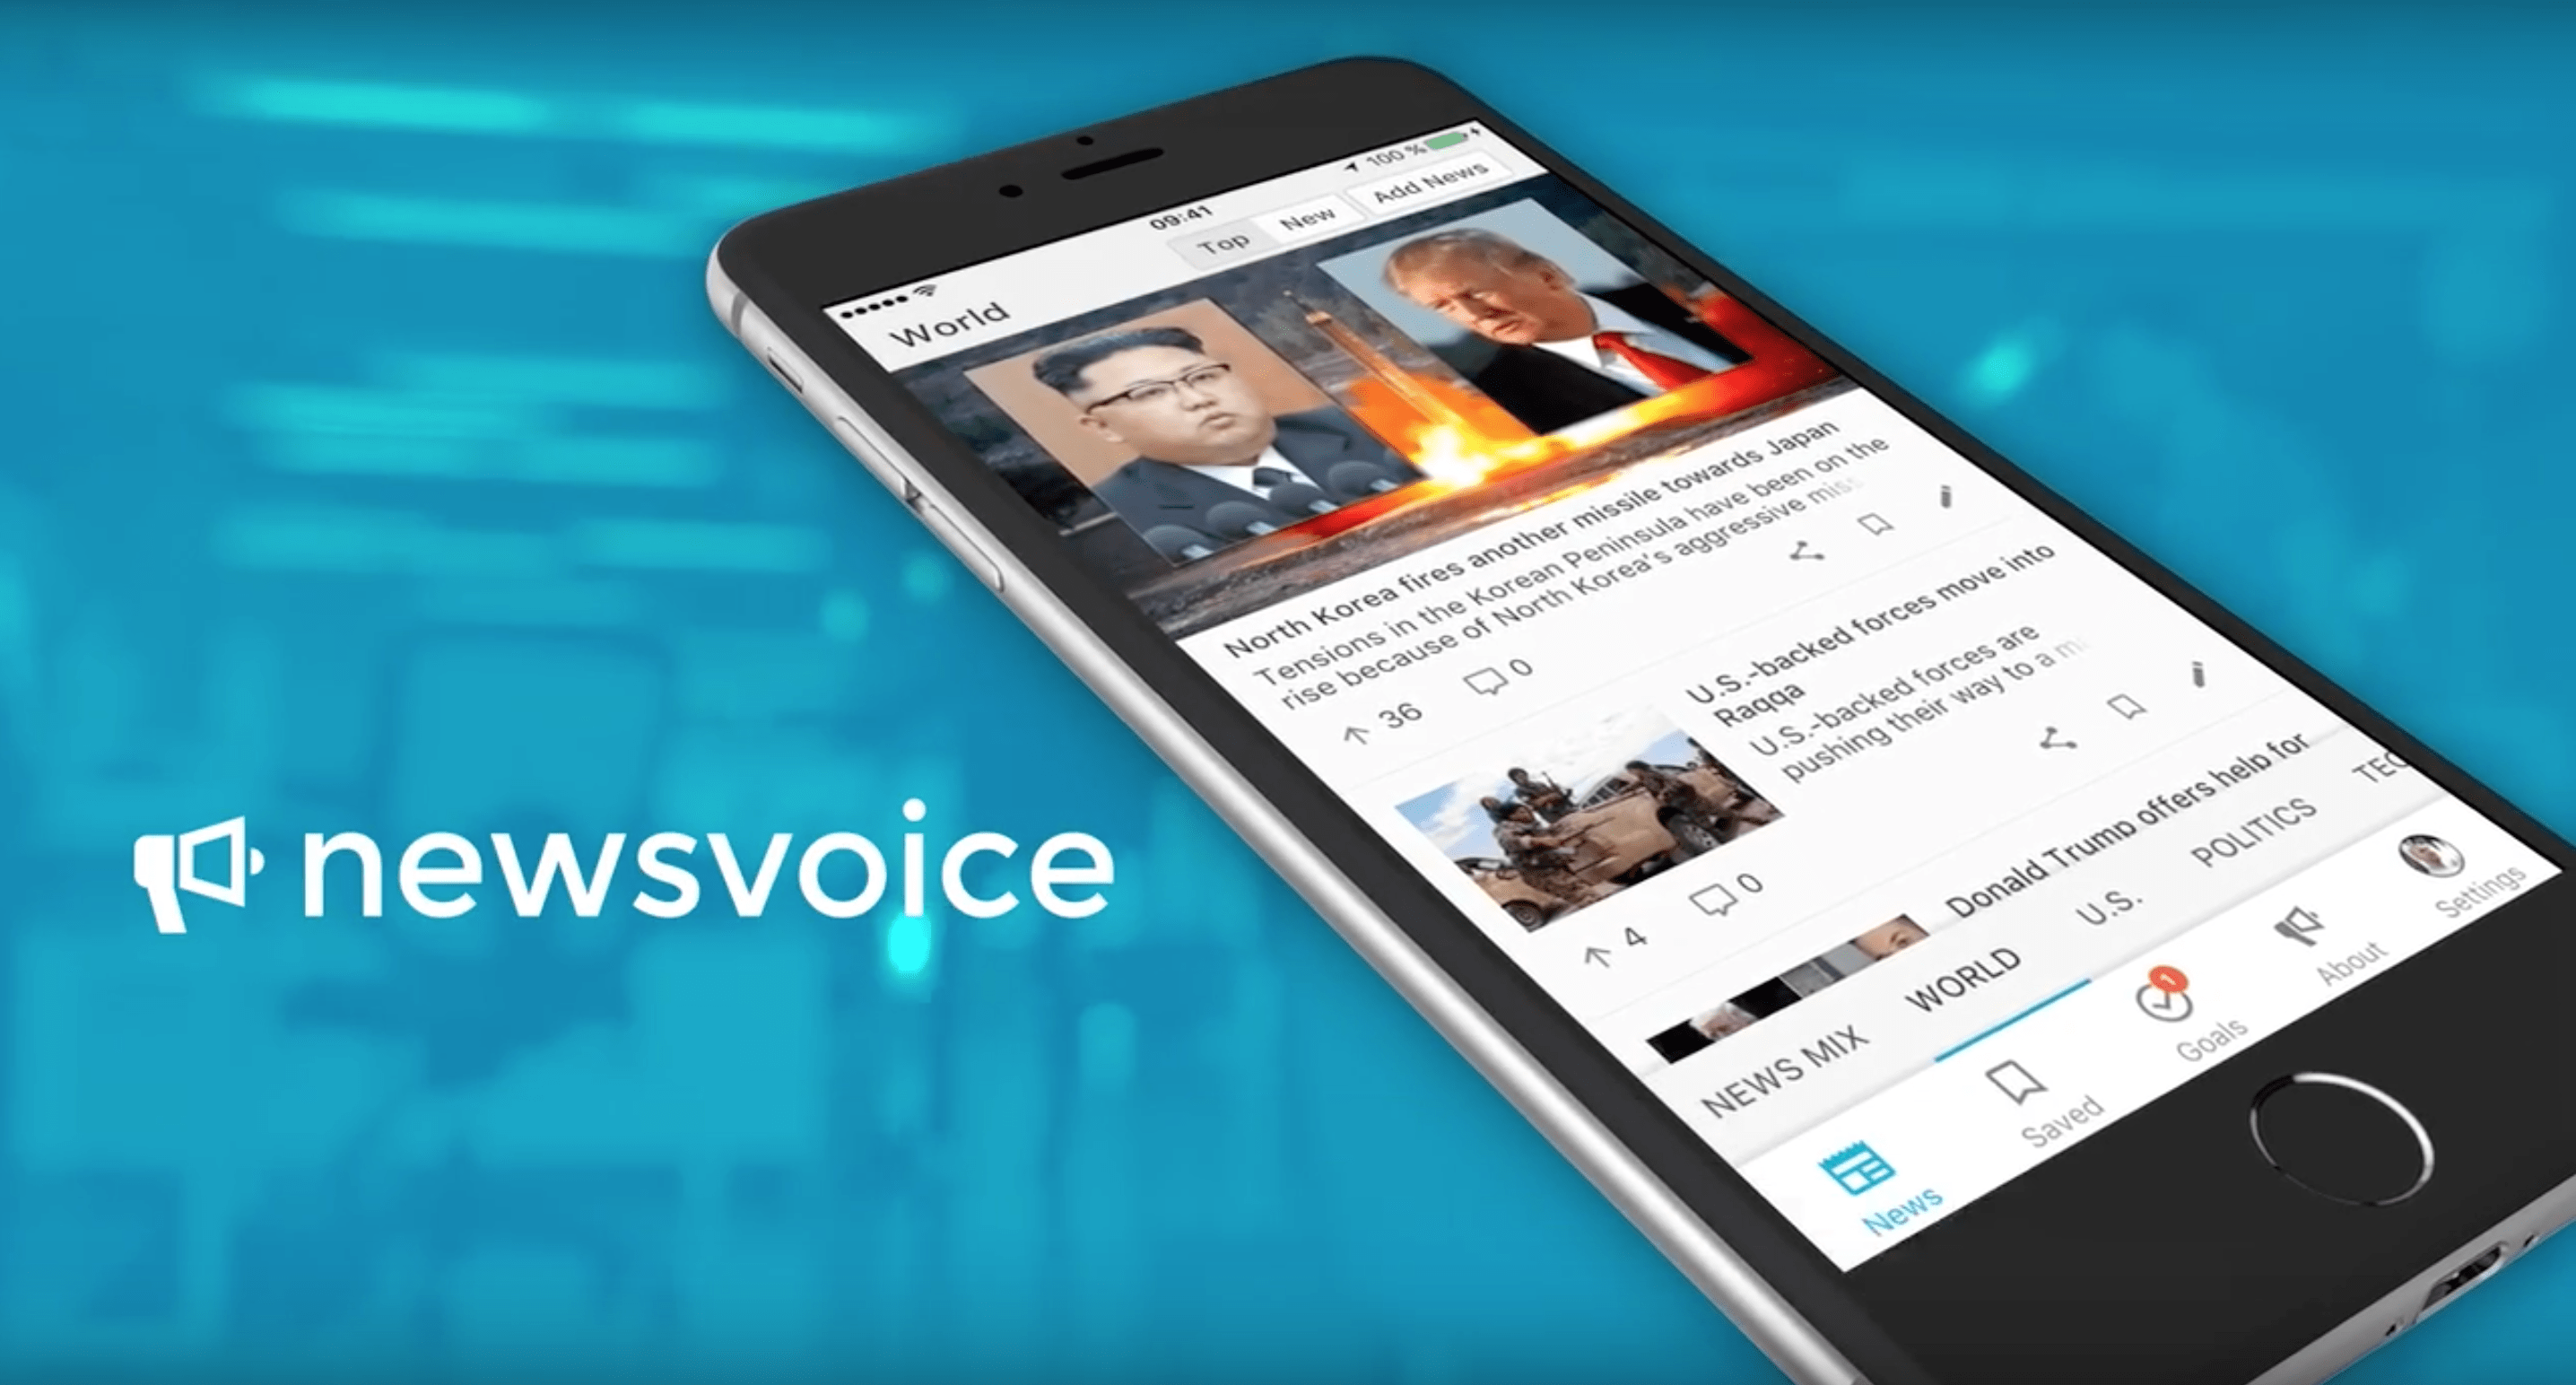 Newsvoice may change the way we consume media